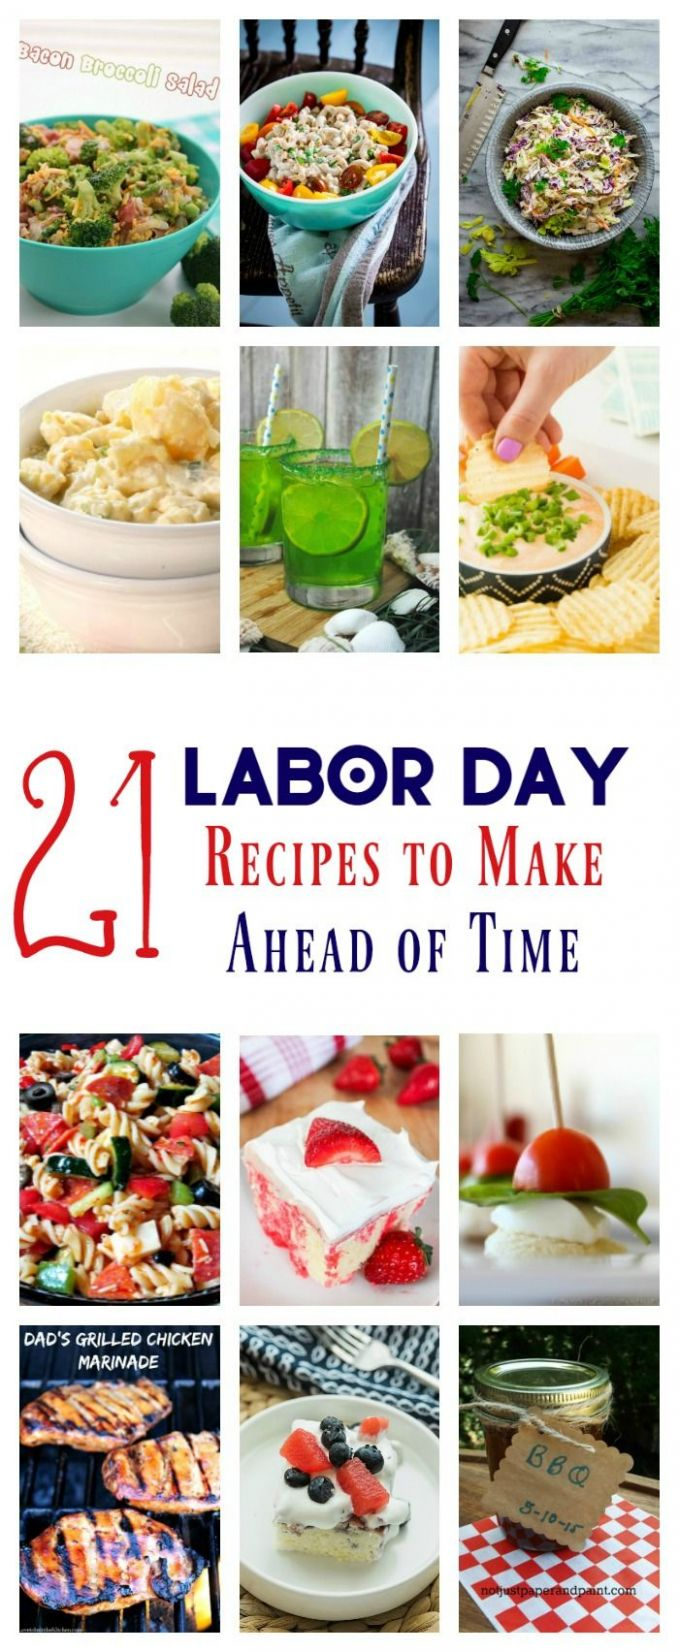 8 Labor Day Recipes to Make Ahead of Time | Barbecue recipes ..